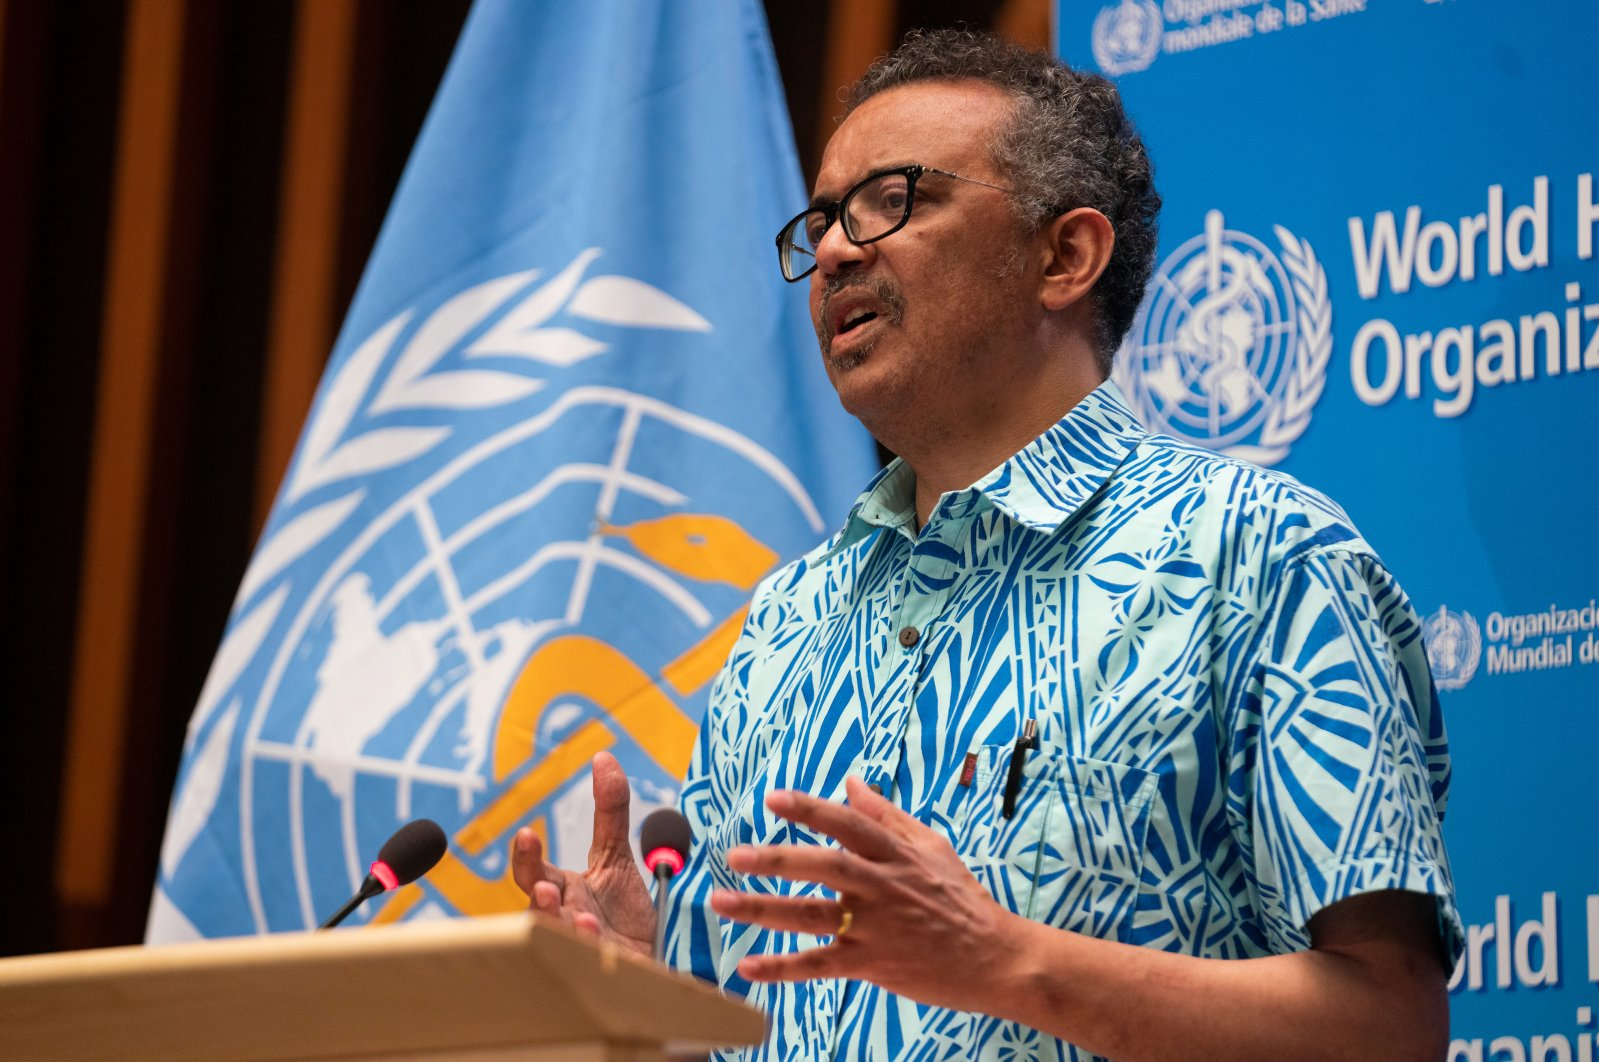 Tedros Adhanom Ghebreyesus, Director General of the World Health Organization (WHO) attends the virtual 73rd World Health Assembly (WHA) during the coronavirus disease outbreak in Geneva, Switzerland, May 19, 2020. (Reuters Photo)